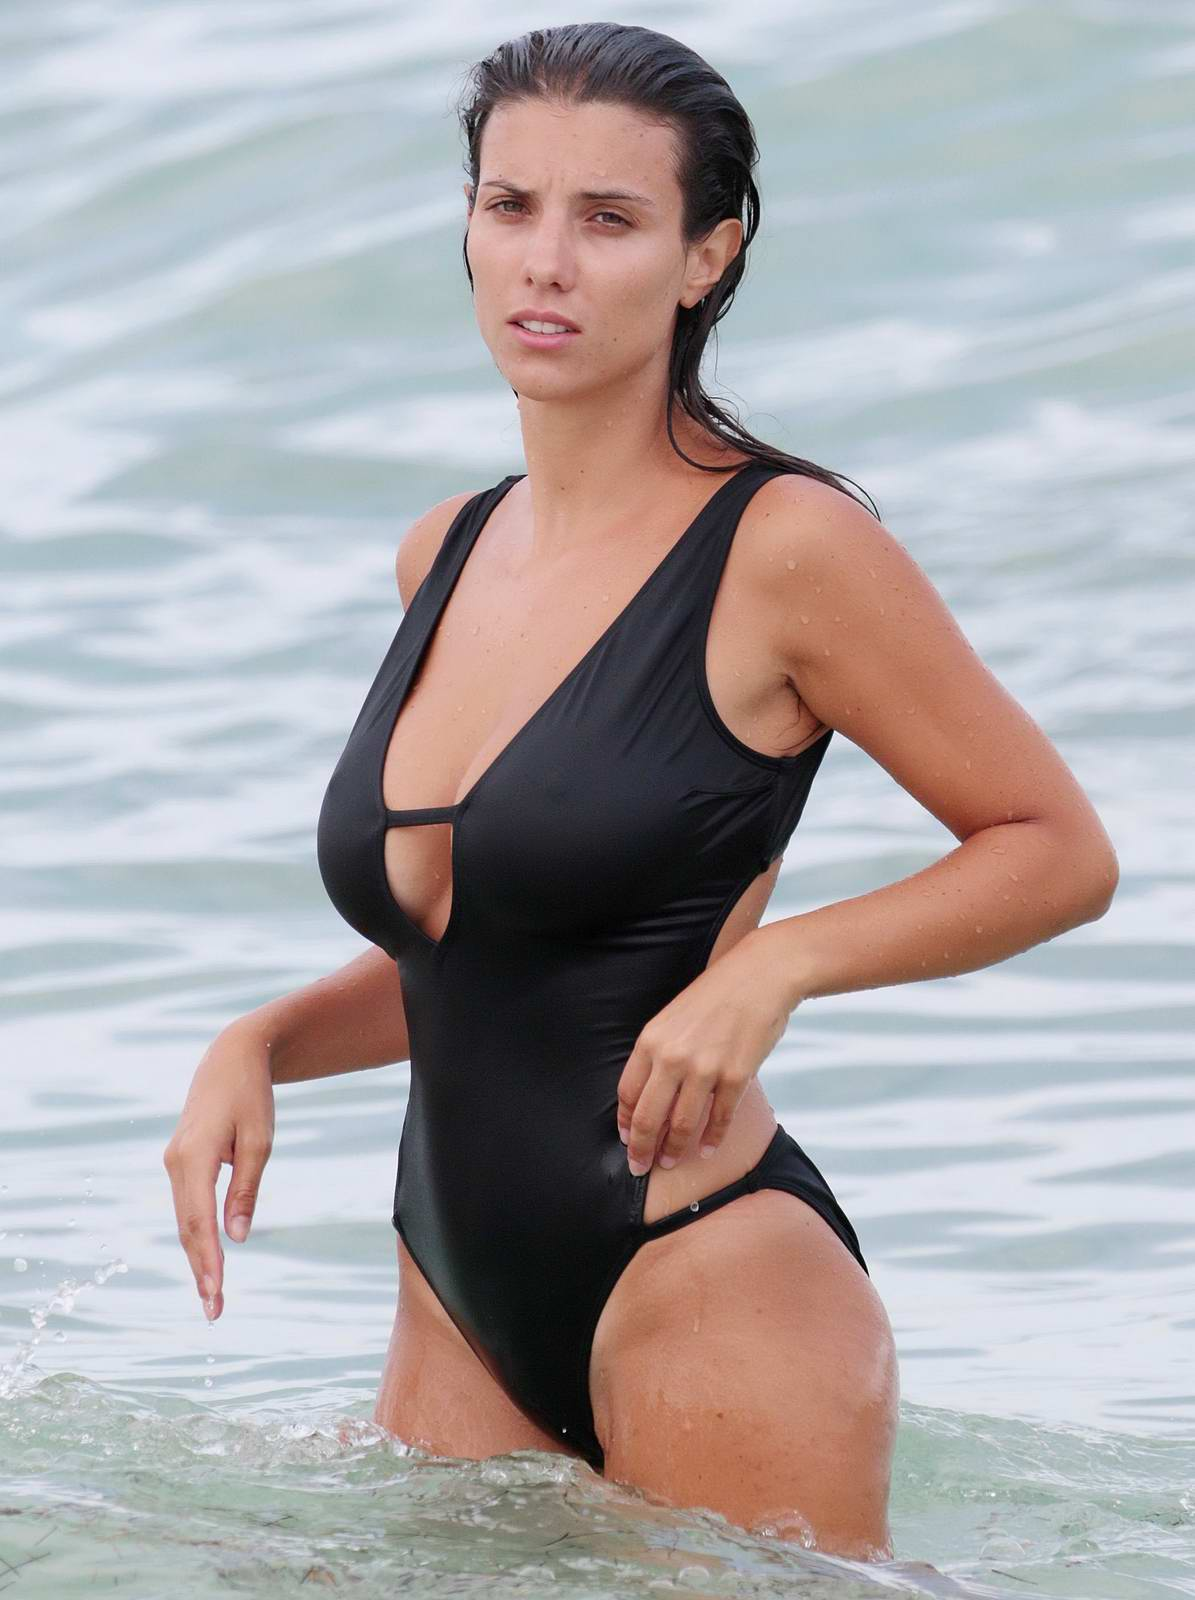 Celebrity Ludivine Sagna nudes (73 photos), Topless, Paparazzi, Twitter, cameltoe 2019